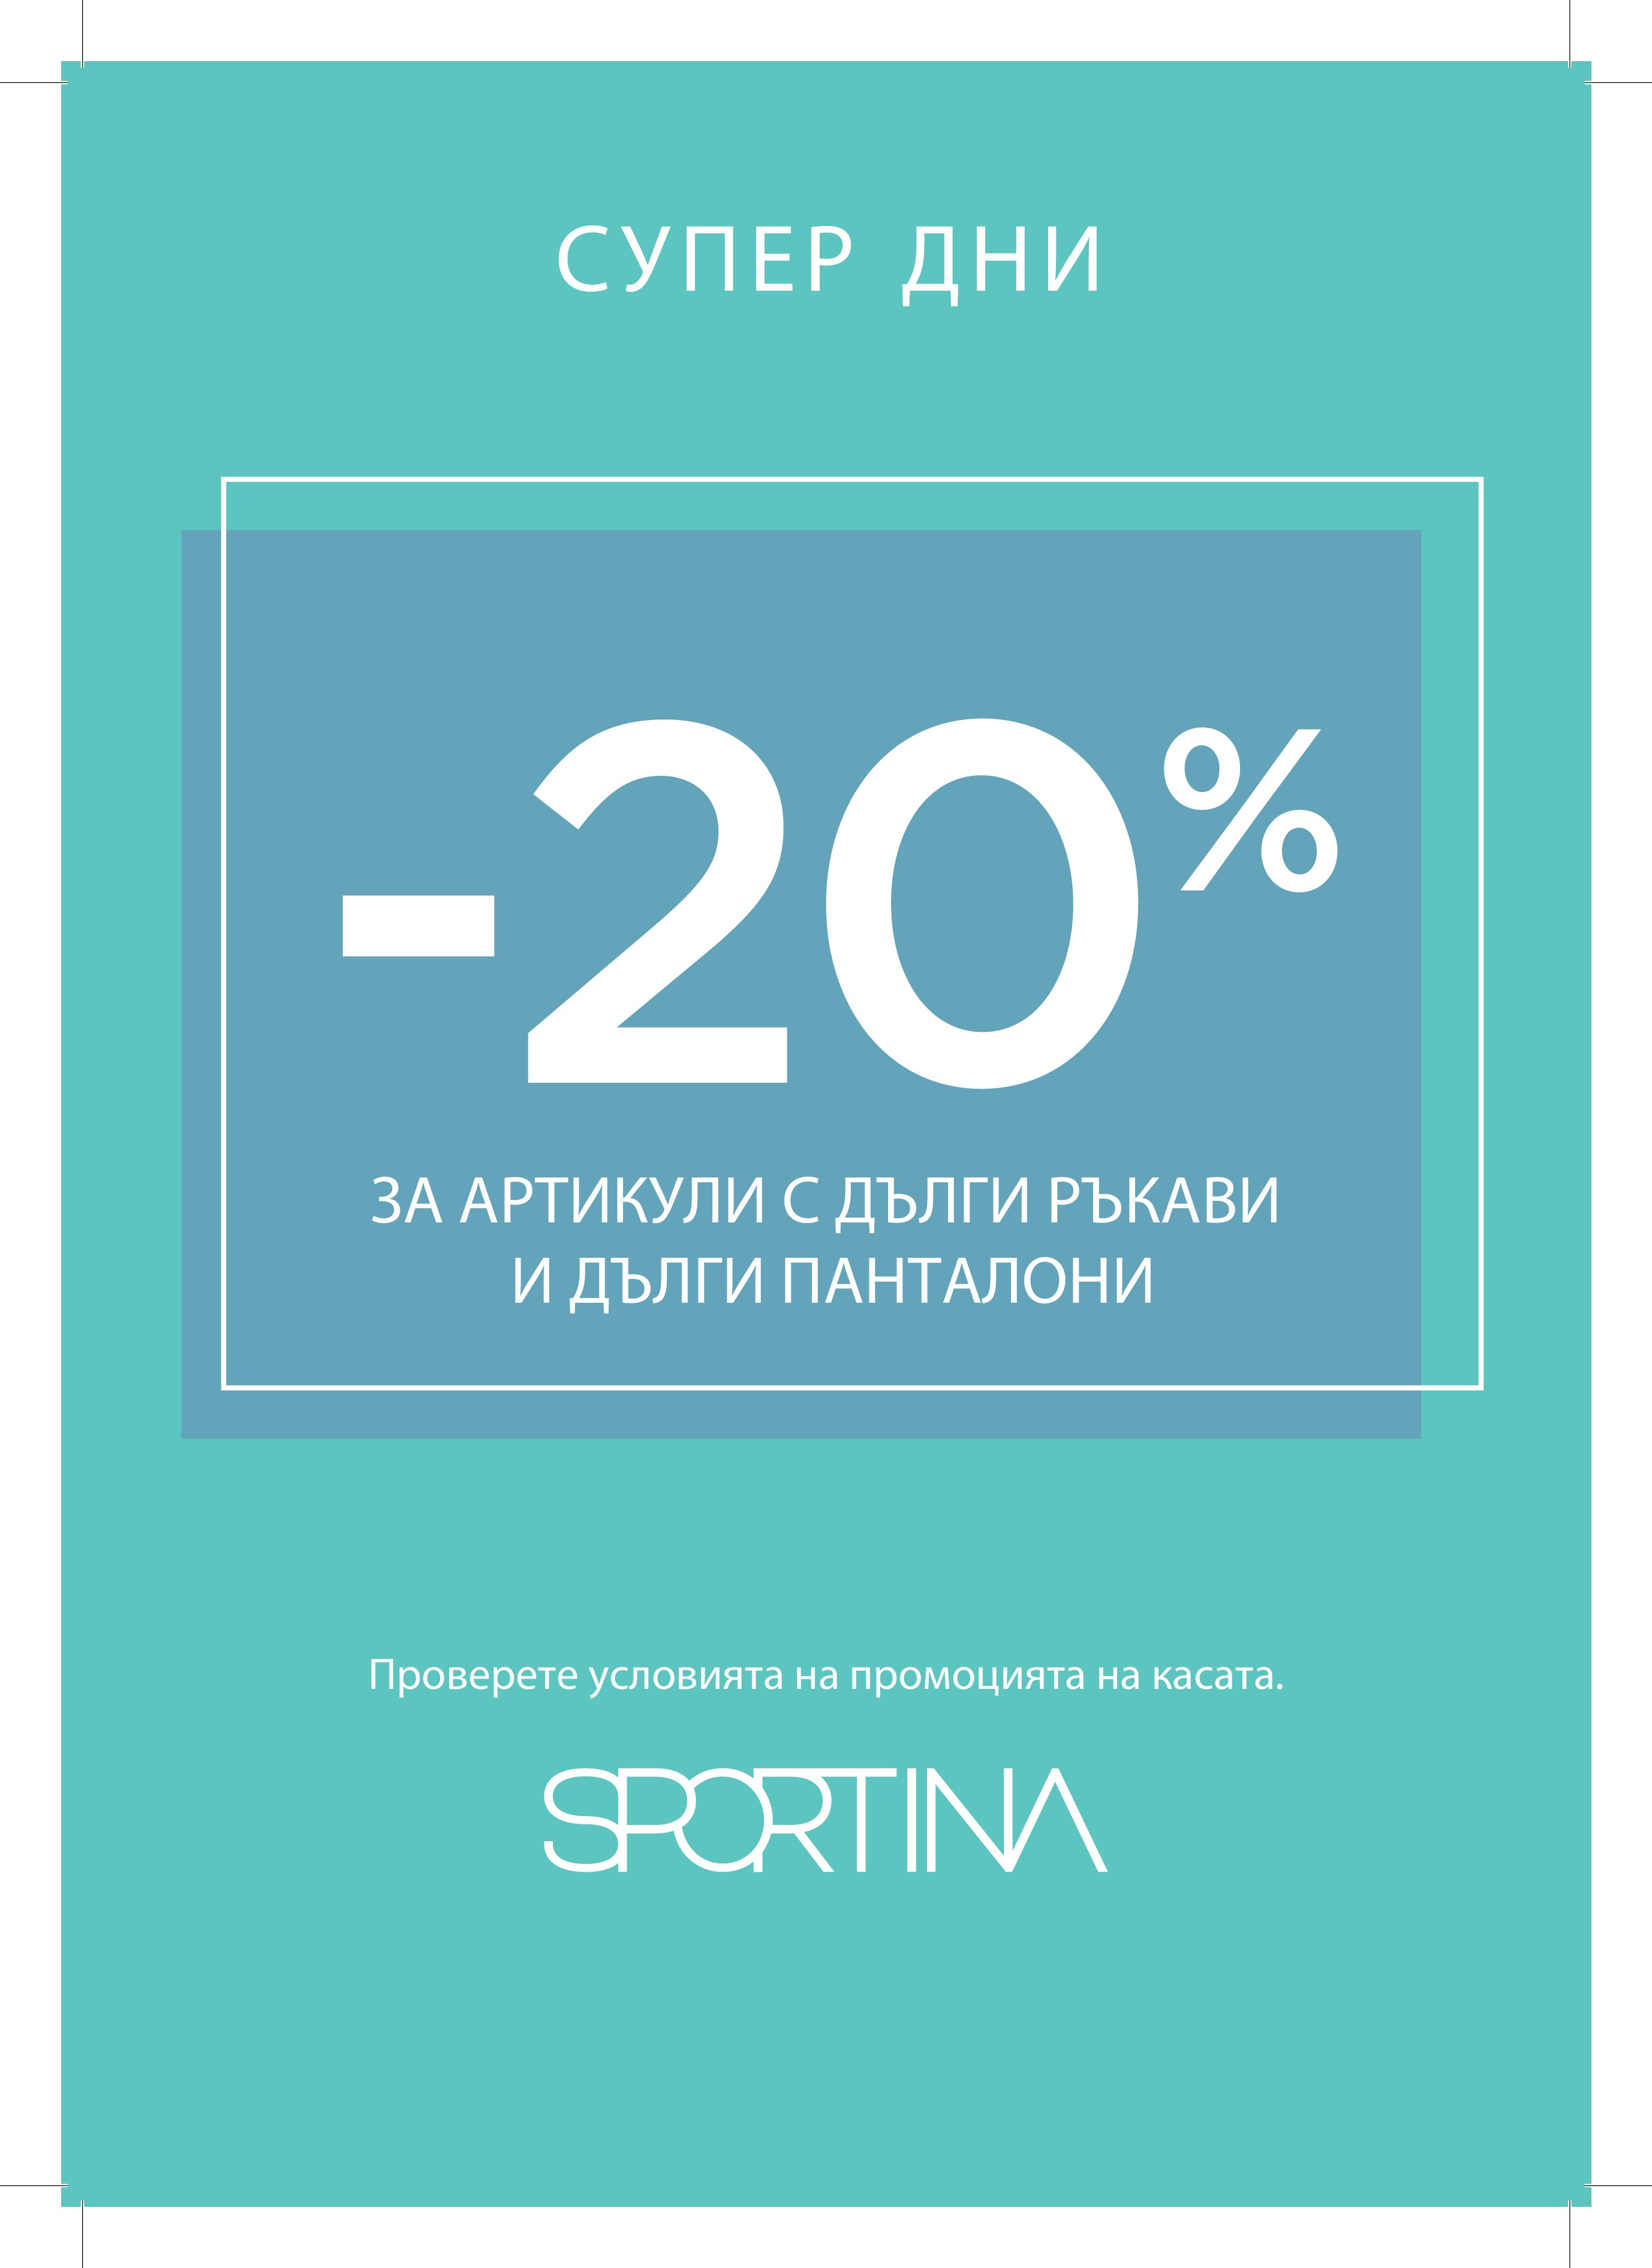 Take advantage of this special offer at SPORTINA stores!